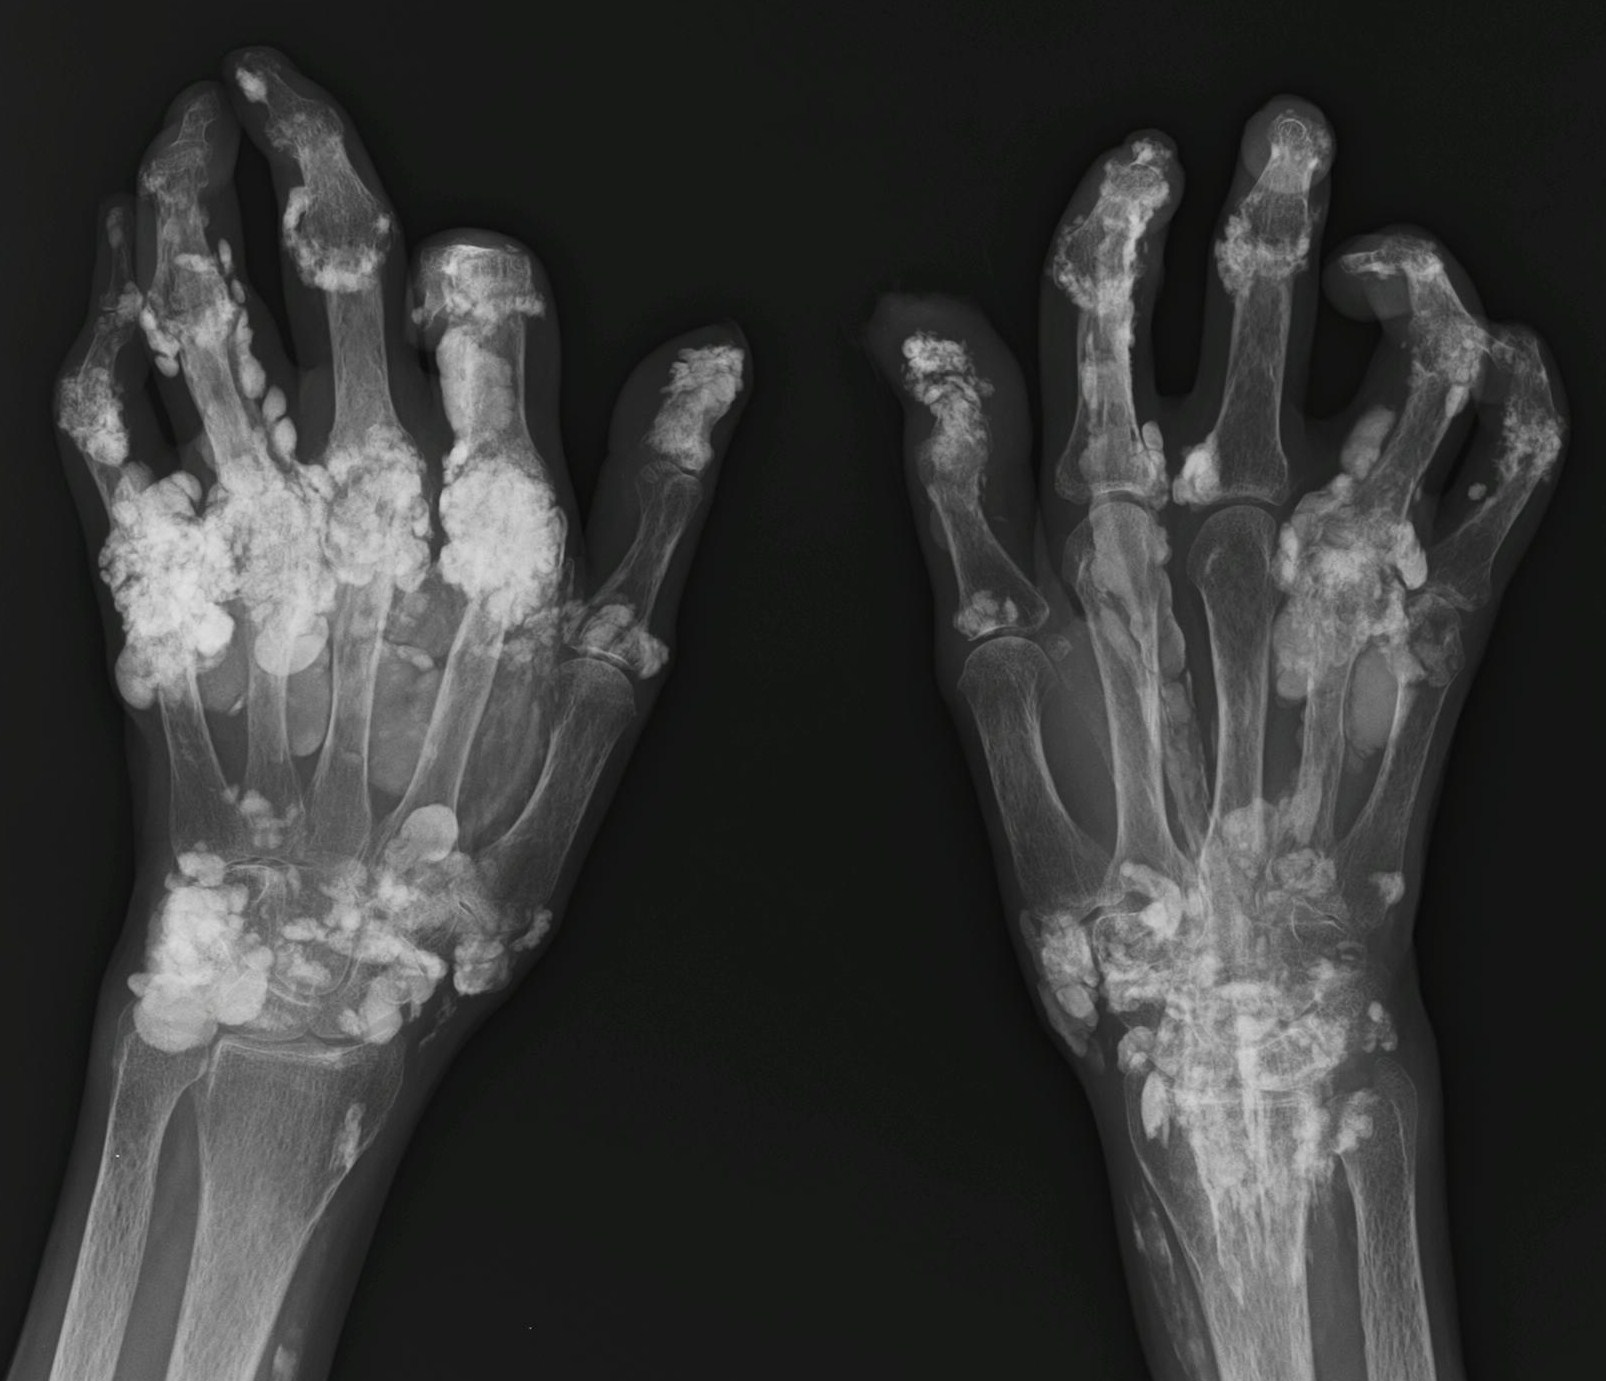 Calcinosis around the joints of hands and arteries | S ...